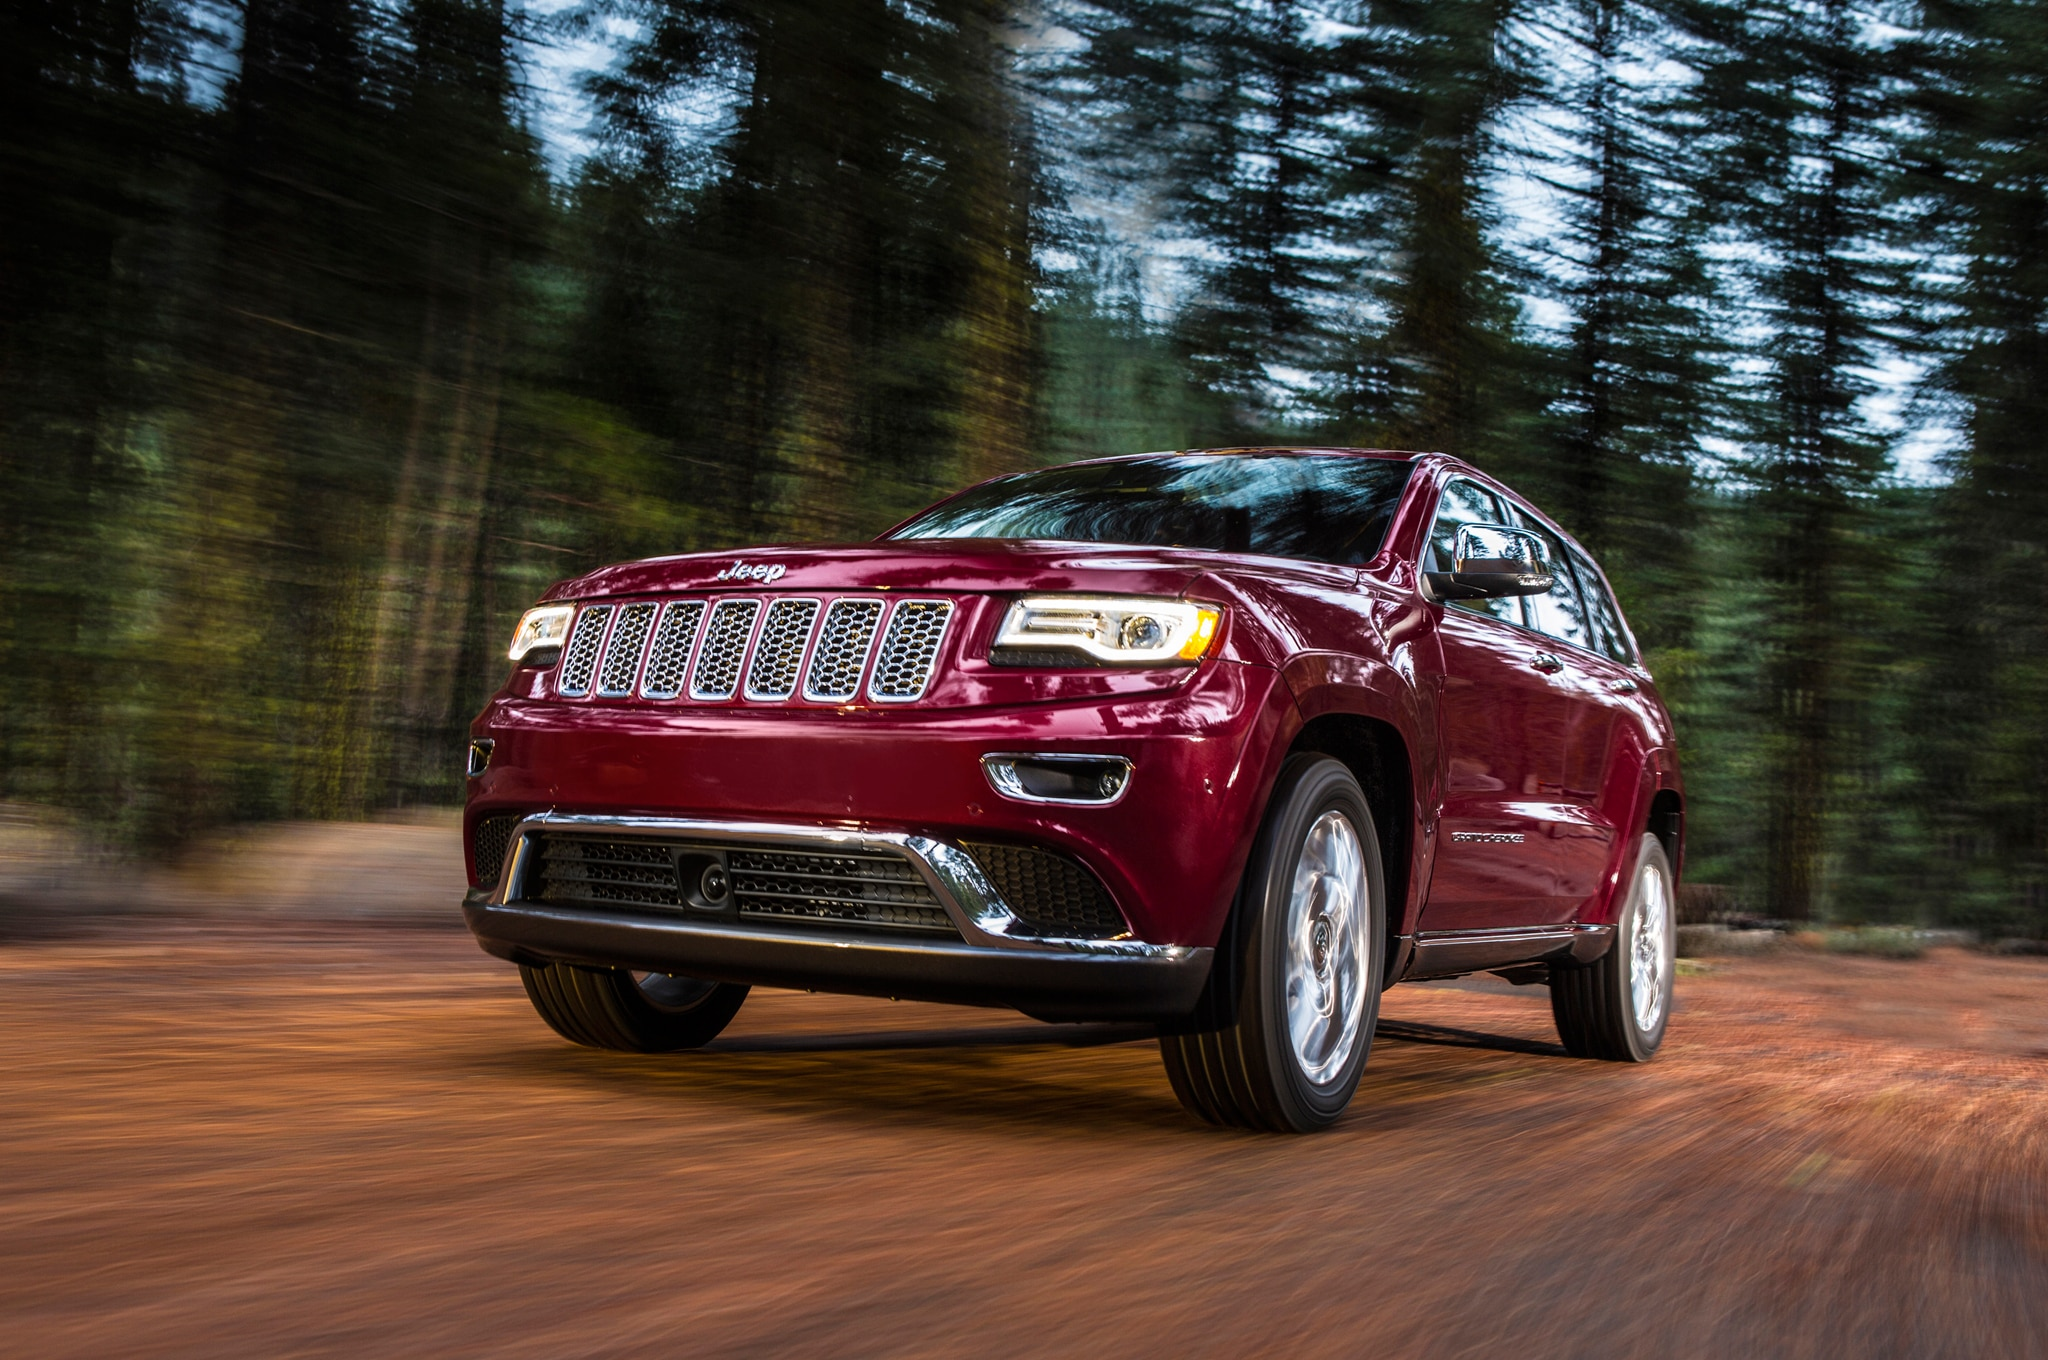 2015 Jeep Cherokee For Sale >> 2016 Jeep Grand Cherokee Summit EcoDiesel One Week Road Test and Review | Automobile Magazine